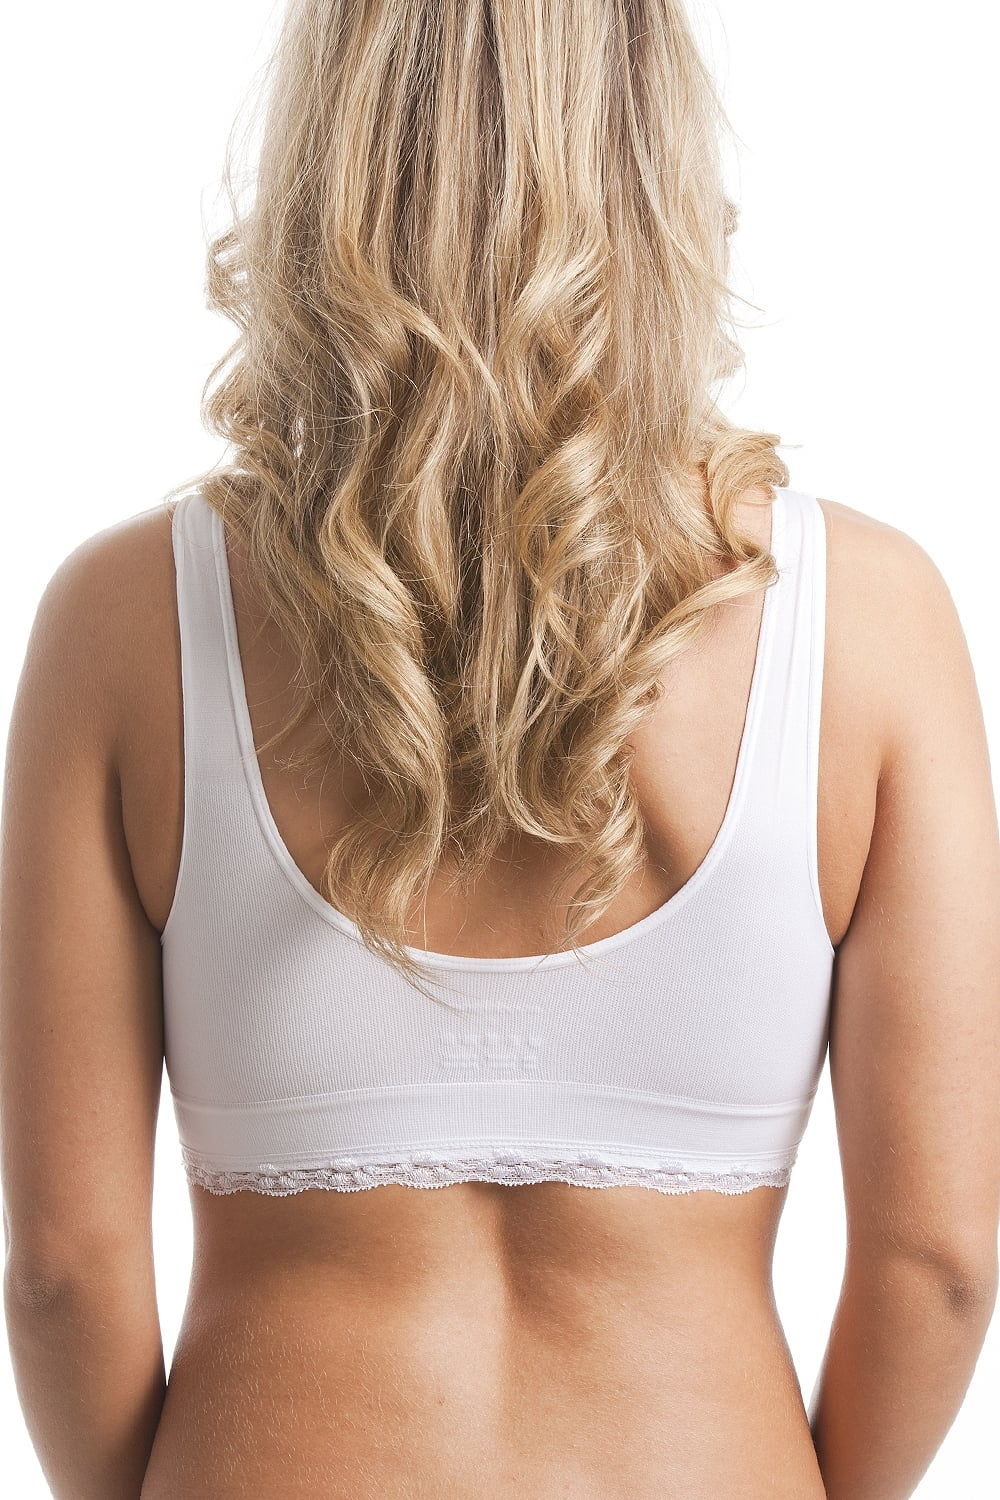 Camille Womens Ladies Lingerie White Non-Wire Lace Trim Padded Comfort Bra